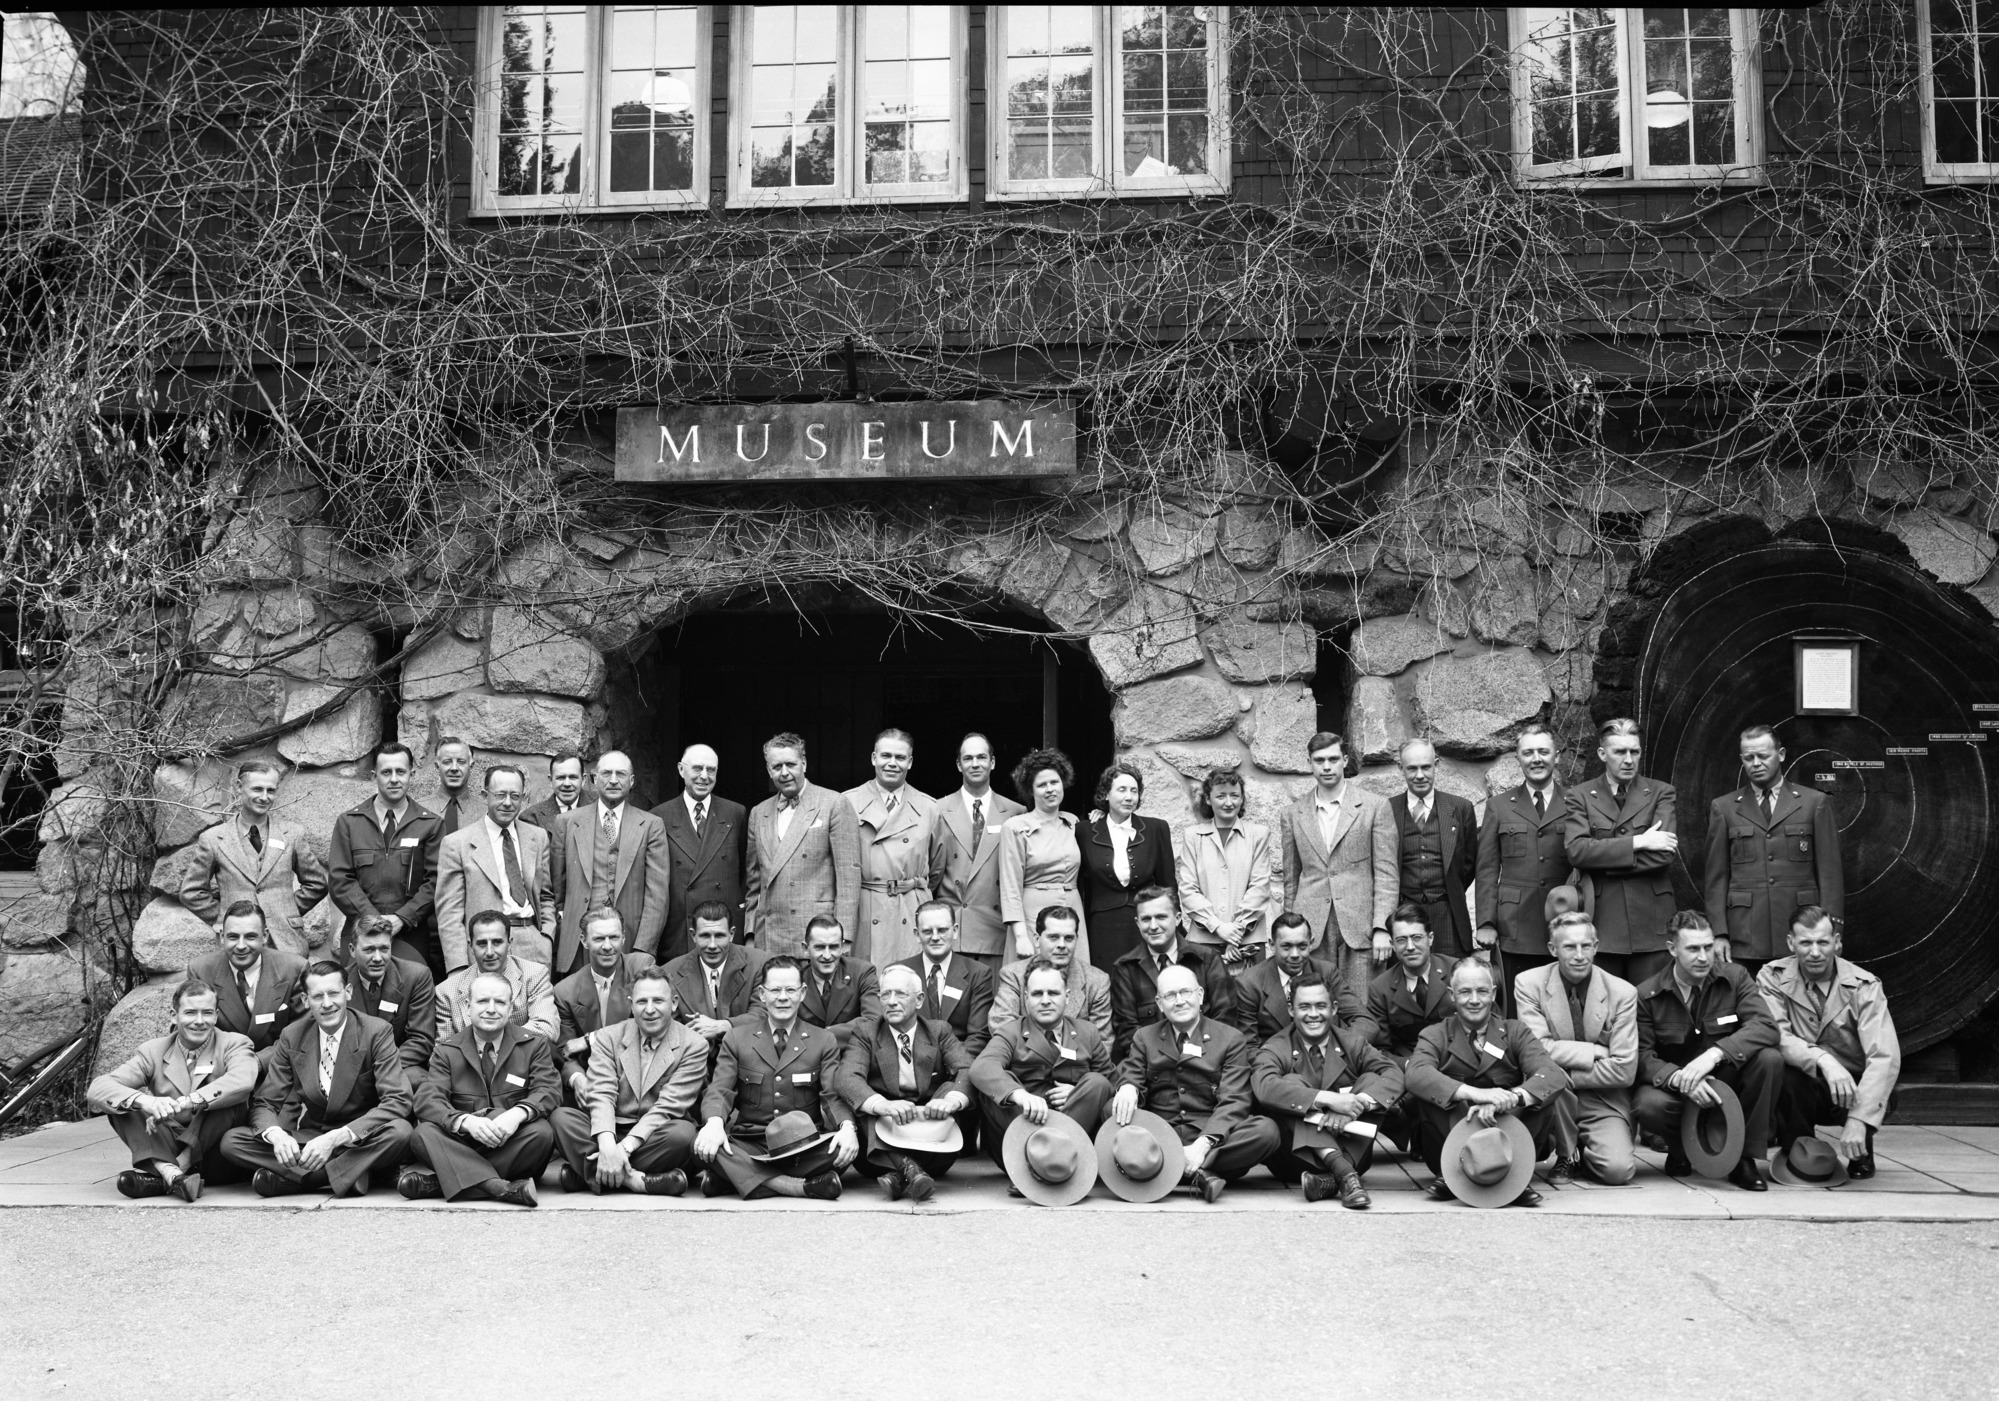 Group attending Region Four Naturalist Conference in Yosemite. April 14-17, 1948. LEFT TO RIGHT: FRONT ROW- Paul E. Schulz, Lassen; Howard R. Stagner, Sequoia; Russell K. Grater, Rainier; Geo. C. Rulhe, Crater Lake; Harry Parker, Yosemite; Clarence Fry, Sequoia; Leslie F. Keller, Death Valley; D.E. McHenry, Yosemite; Chas. H. Hembree, Death Valley; and Aubrey Houston, Death Valley. 2ND ROW- Don Erskine, Sequoia-Kings; Gunnar Fagerlund, Olympic; Sam J. Pusateri, Sequoia; Frank R. Givens, Joshua Tree; Merlin K. Potts, Mt. Rainier; Frank Bean, Mt. McKinley; Aubrey Neasham, Historian Region Four; Mahoney, Yosemite; Howard Powers, Hawaii; Robert McIntyre, Yosemite; and John Bingaman, Yosemite. STANDING- Norman Herkenham, Shasta Lake; Sam L. Clark, Yosemite; Dorr Yeager, Regional Naturalist; Odin Johnson, Yosemite; O.A. Tomlinson, Regional Director of Region Four; C.M. Goethe; John Doerr, Chief Naturalist; Carl Swartzlow, Regional Naturalist-Region 2; Lowell Sumner, Biologist; Margery Kennedy, Elizabeth Godfrey, He